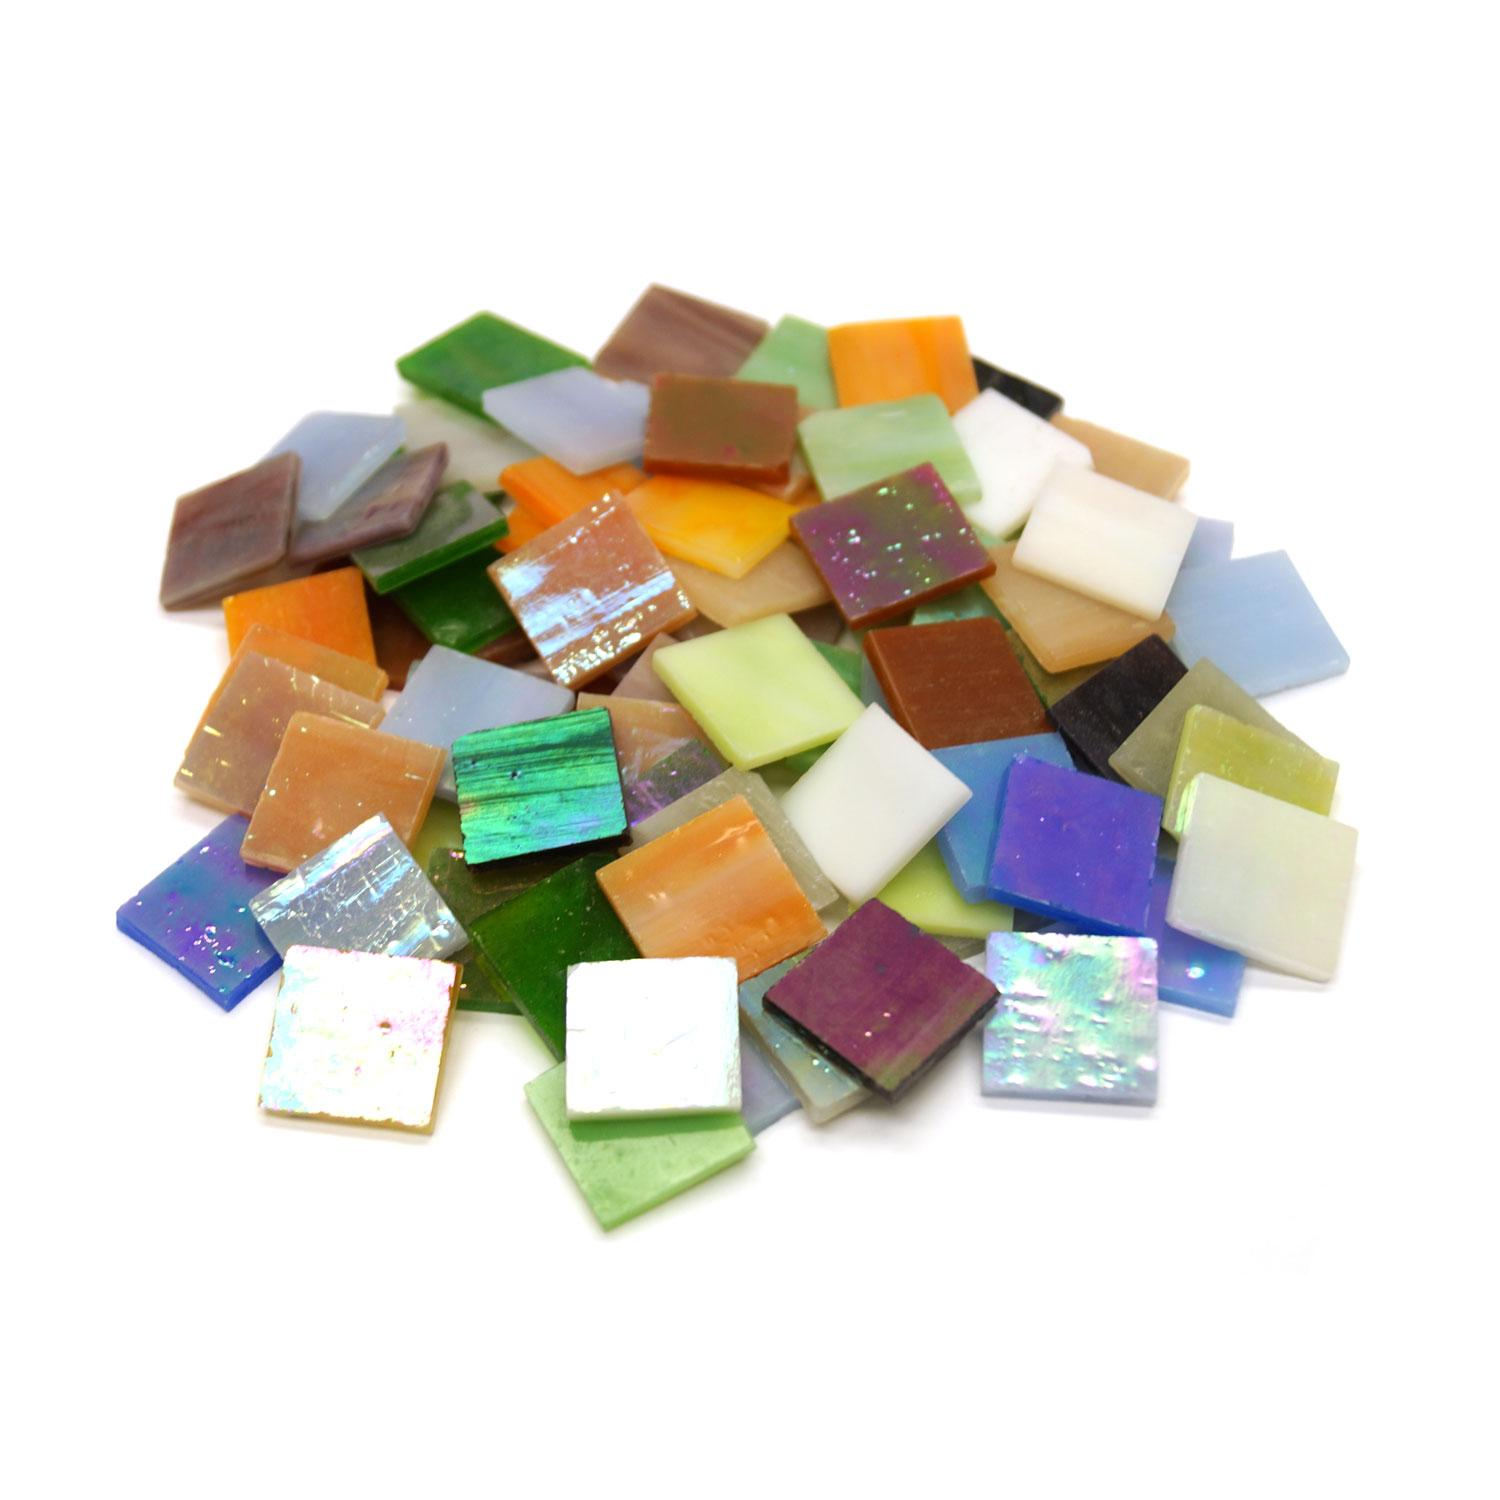 3/4 Iridized Streaky Stained Glass Chip Assortment - 80 Pieces